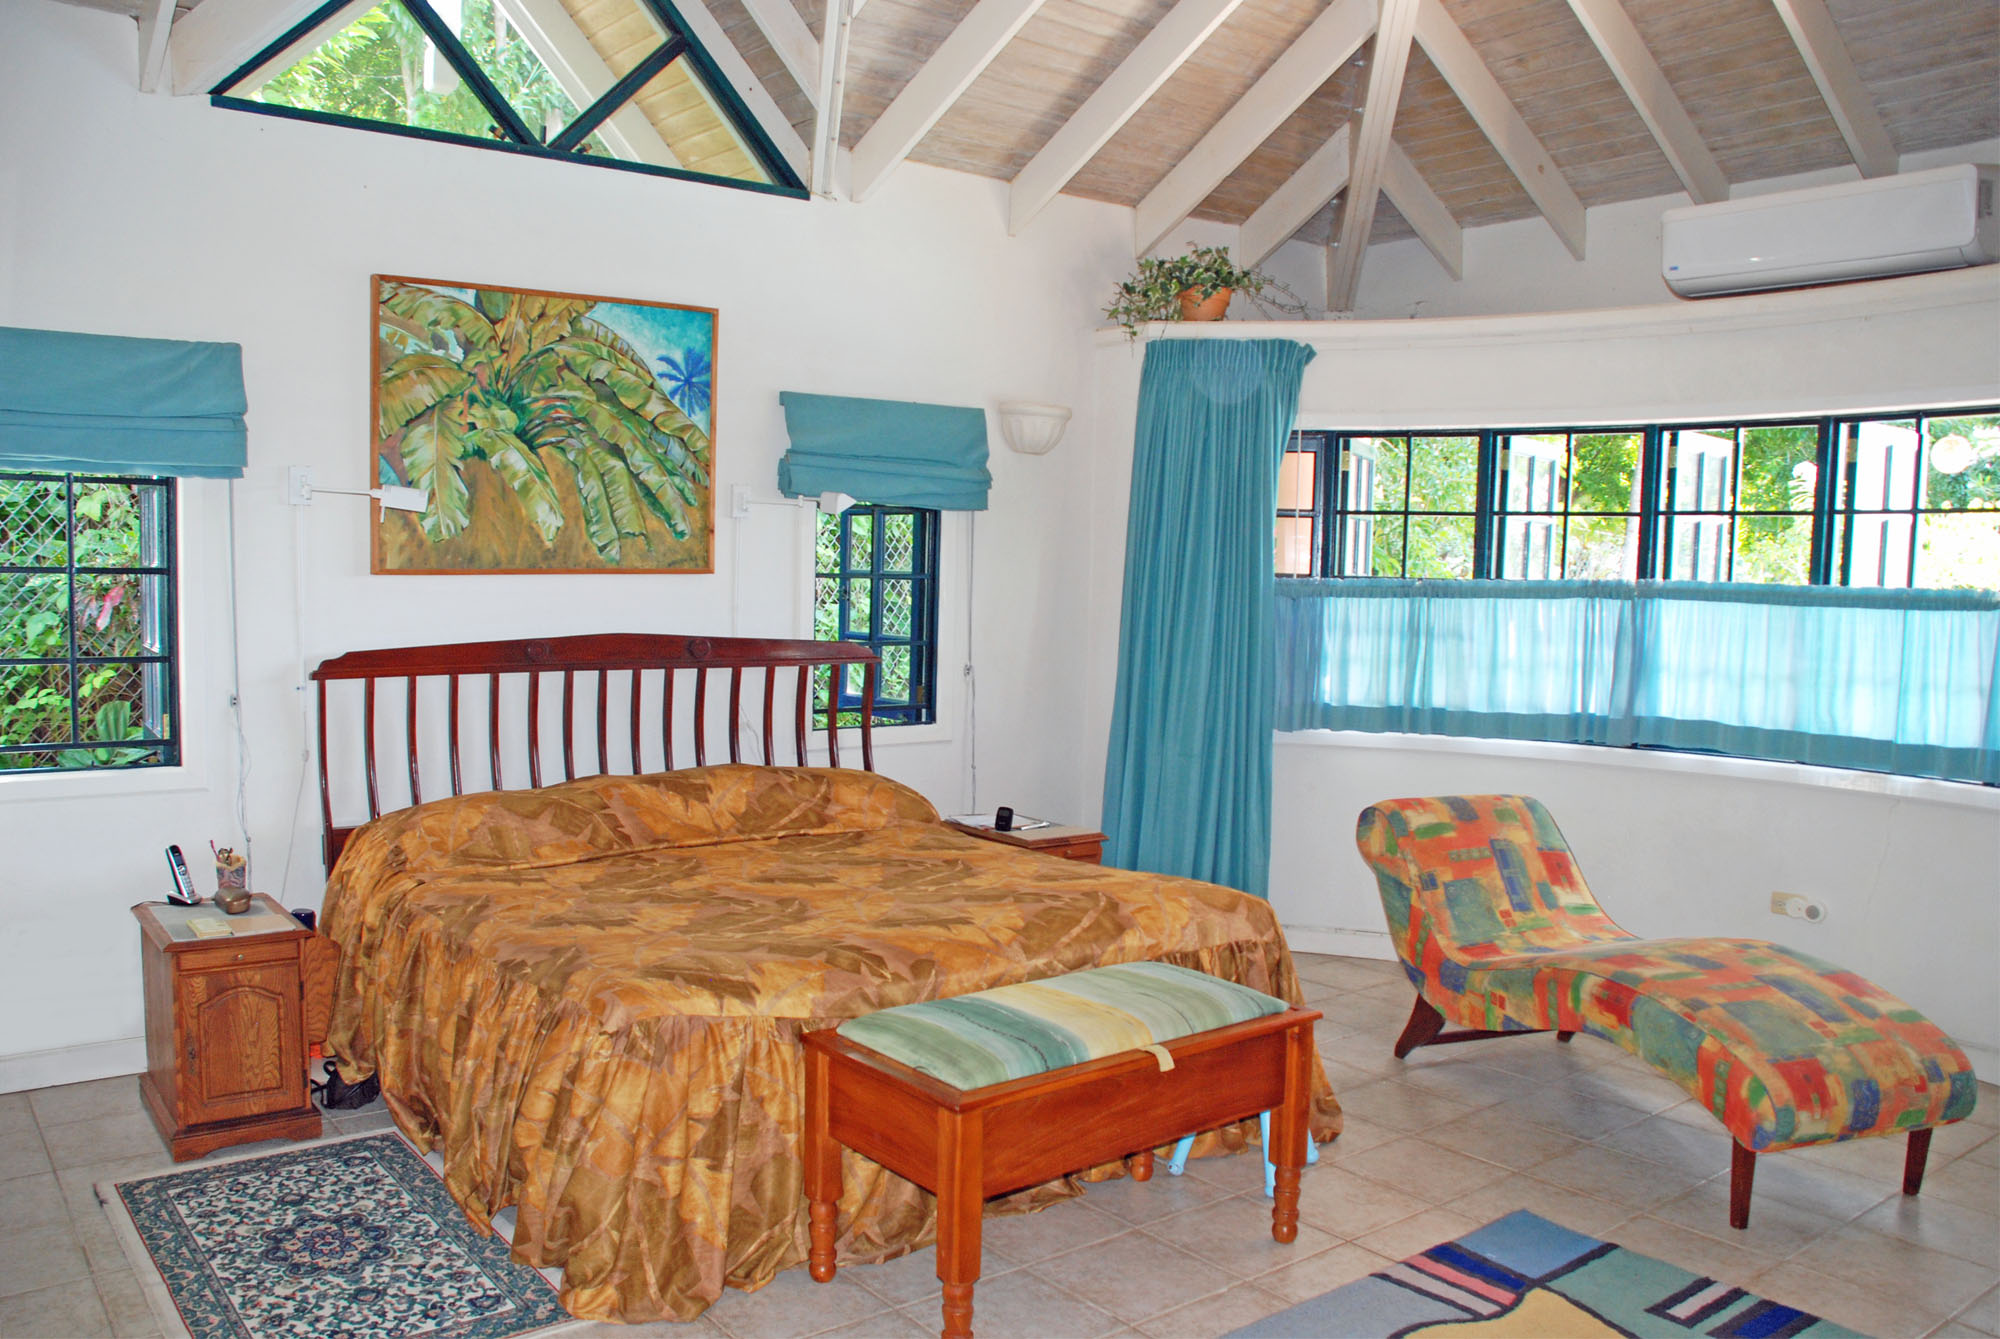 SOL Y MAR VILLA, TOBAGO W.I. Master bedroom shown above. Not seen: Walk-in closet, two-sink two-shower bathroom